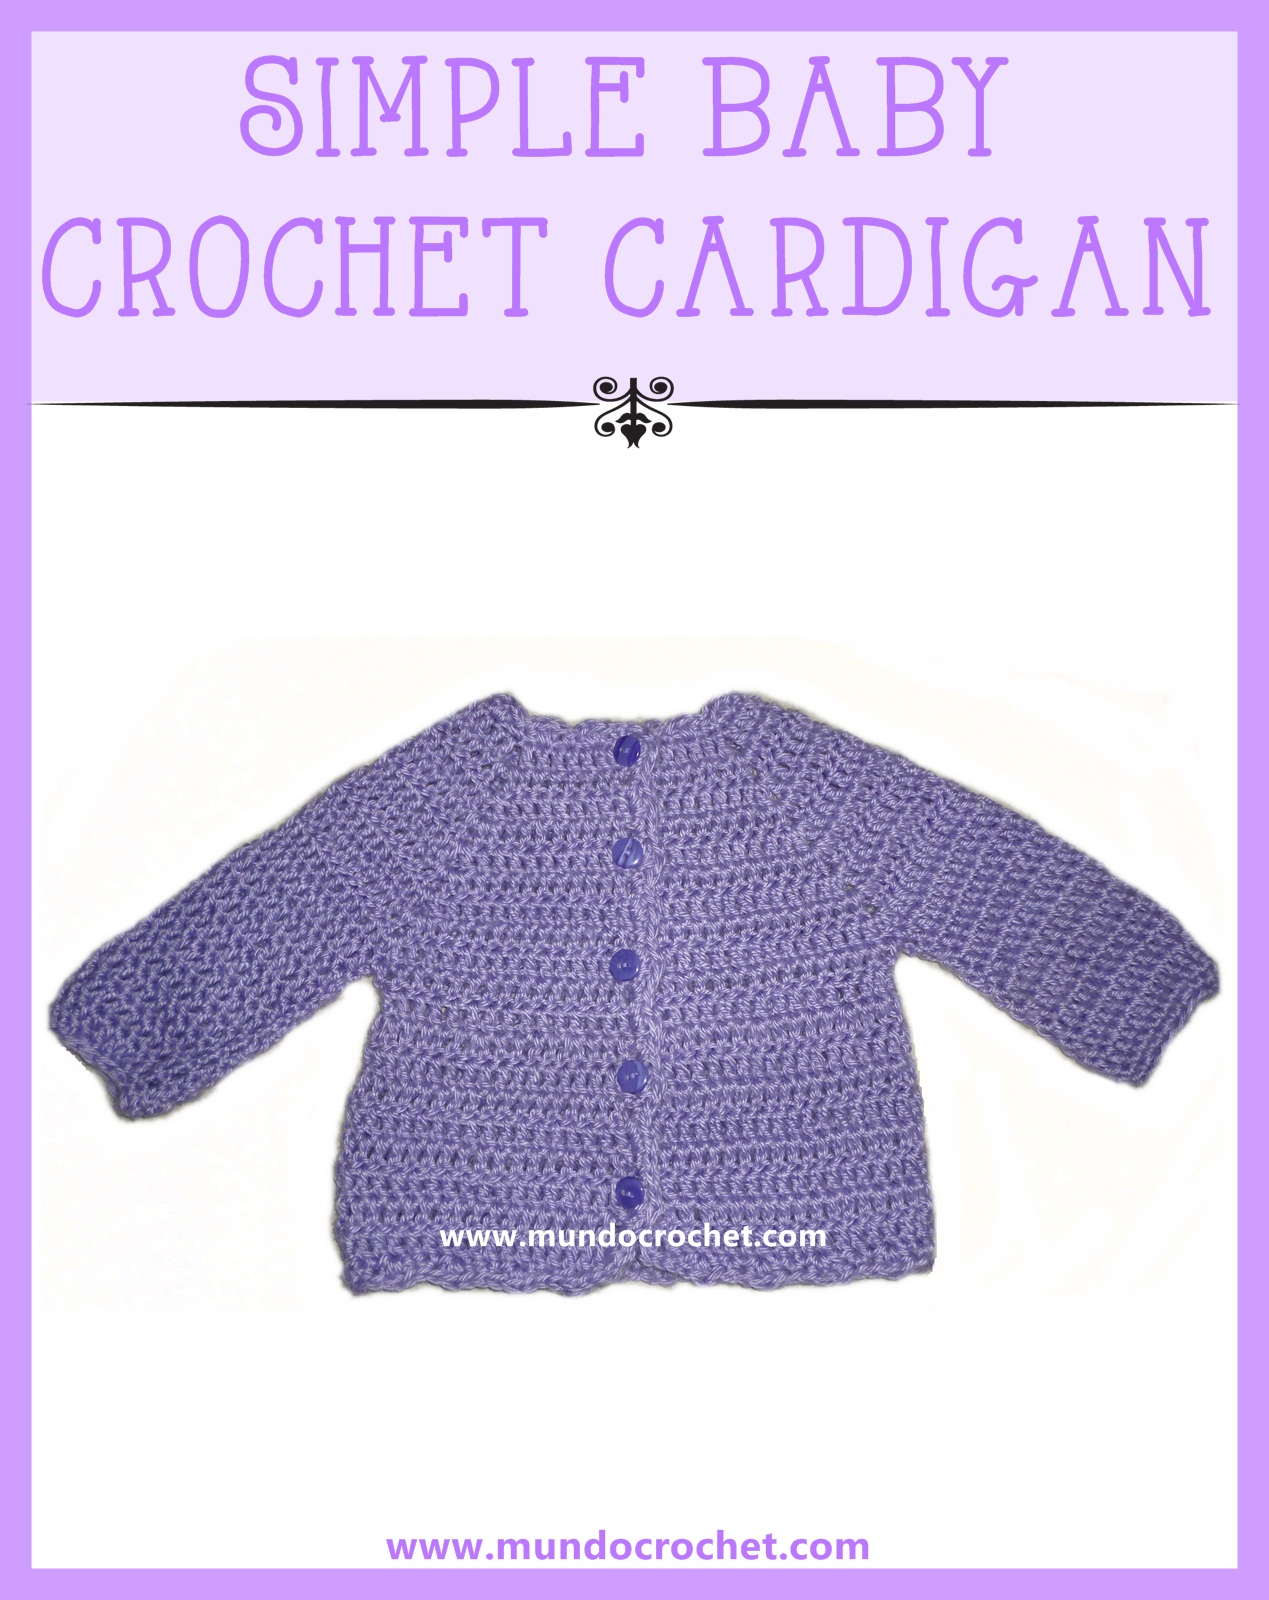 Simple baby crochet cardigan or sweater